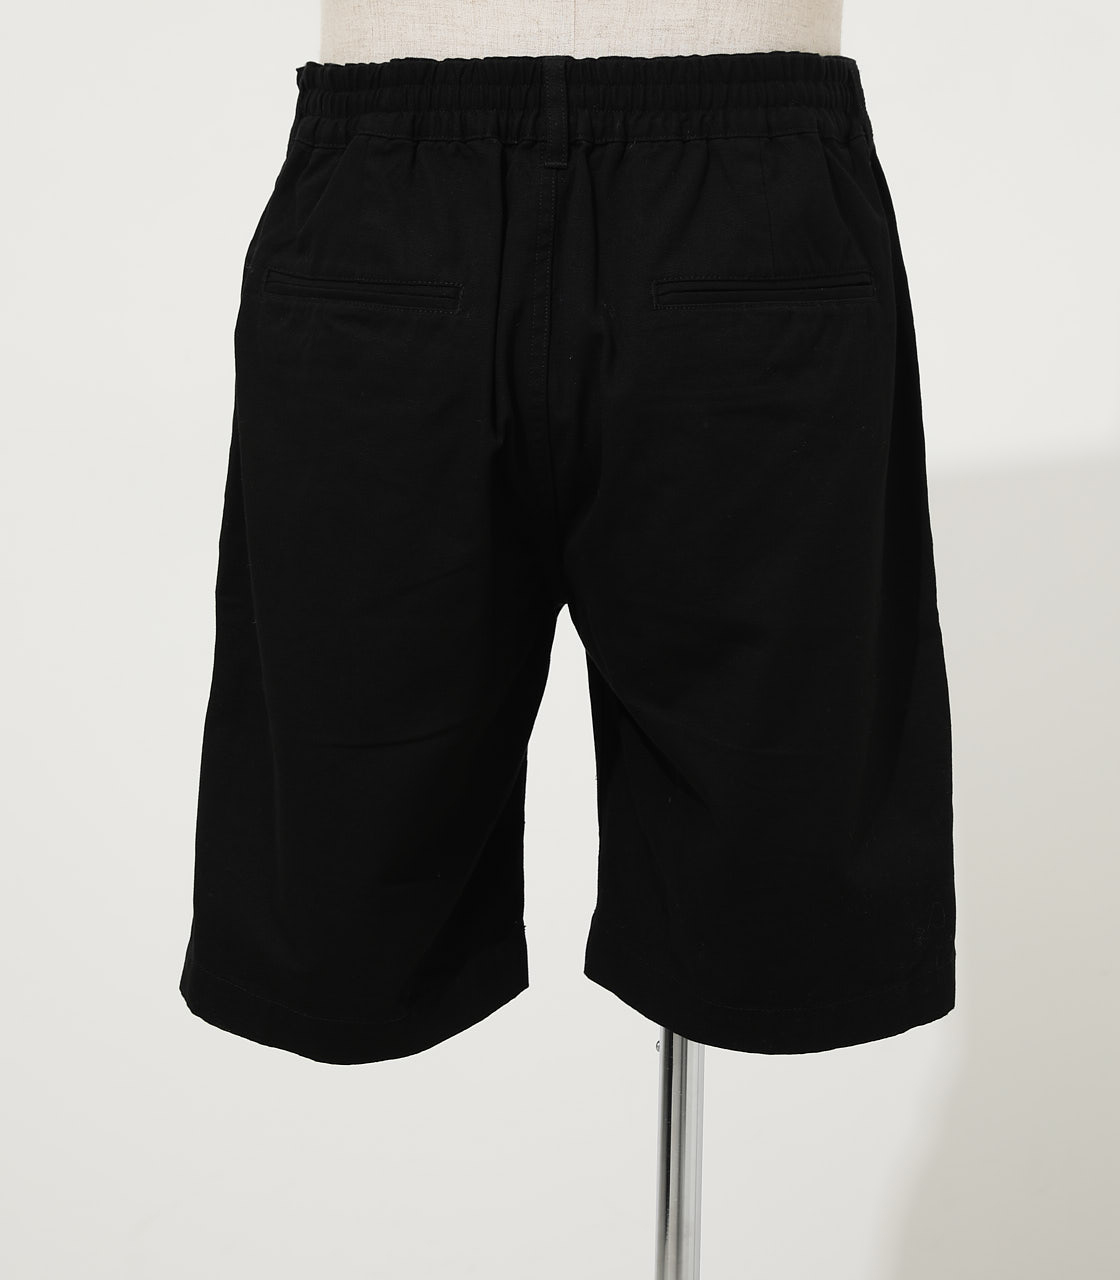 TWILL COLOR SHORTS 詳細画像 BLK 4